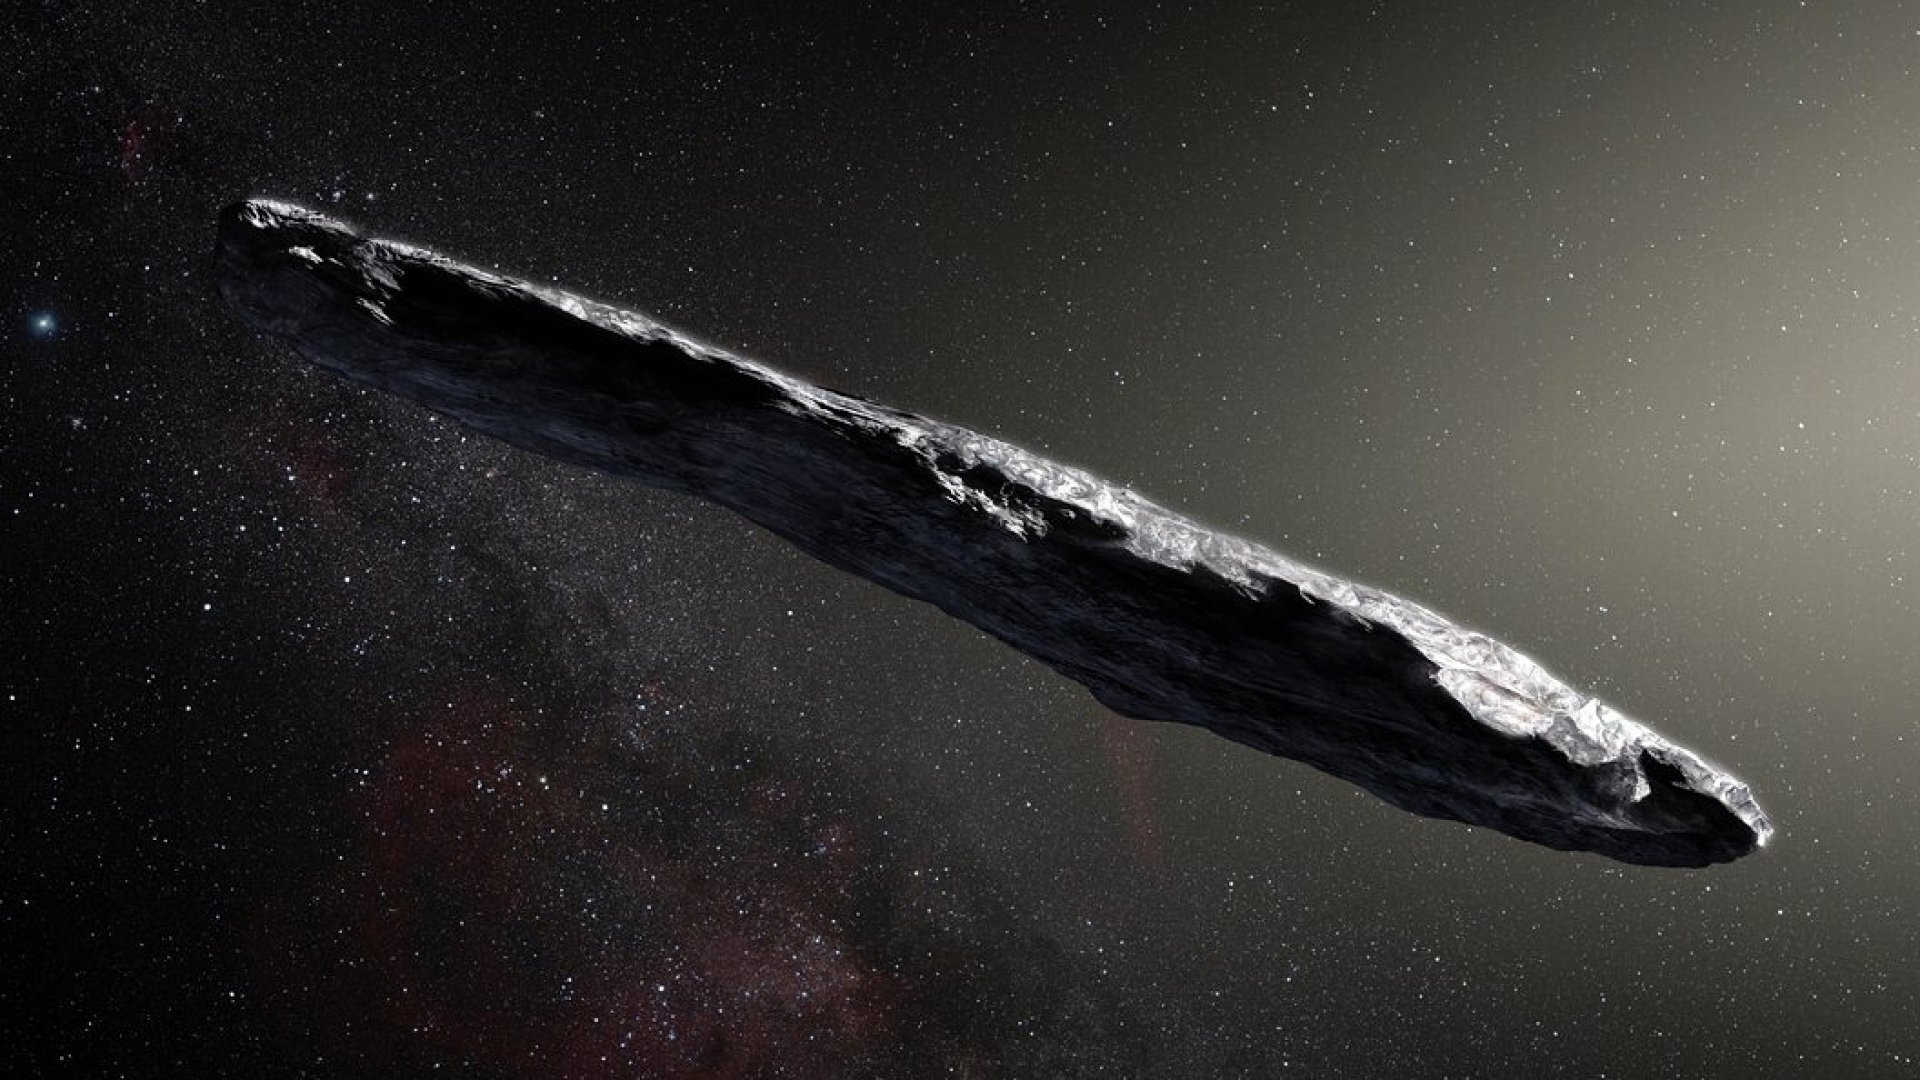 Artist's impression of the interstellar asteroid `Oumuamua.